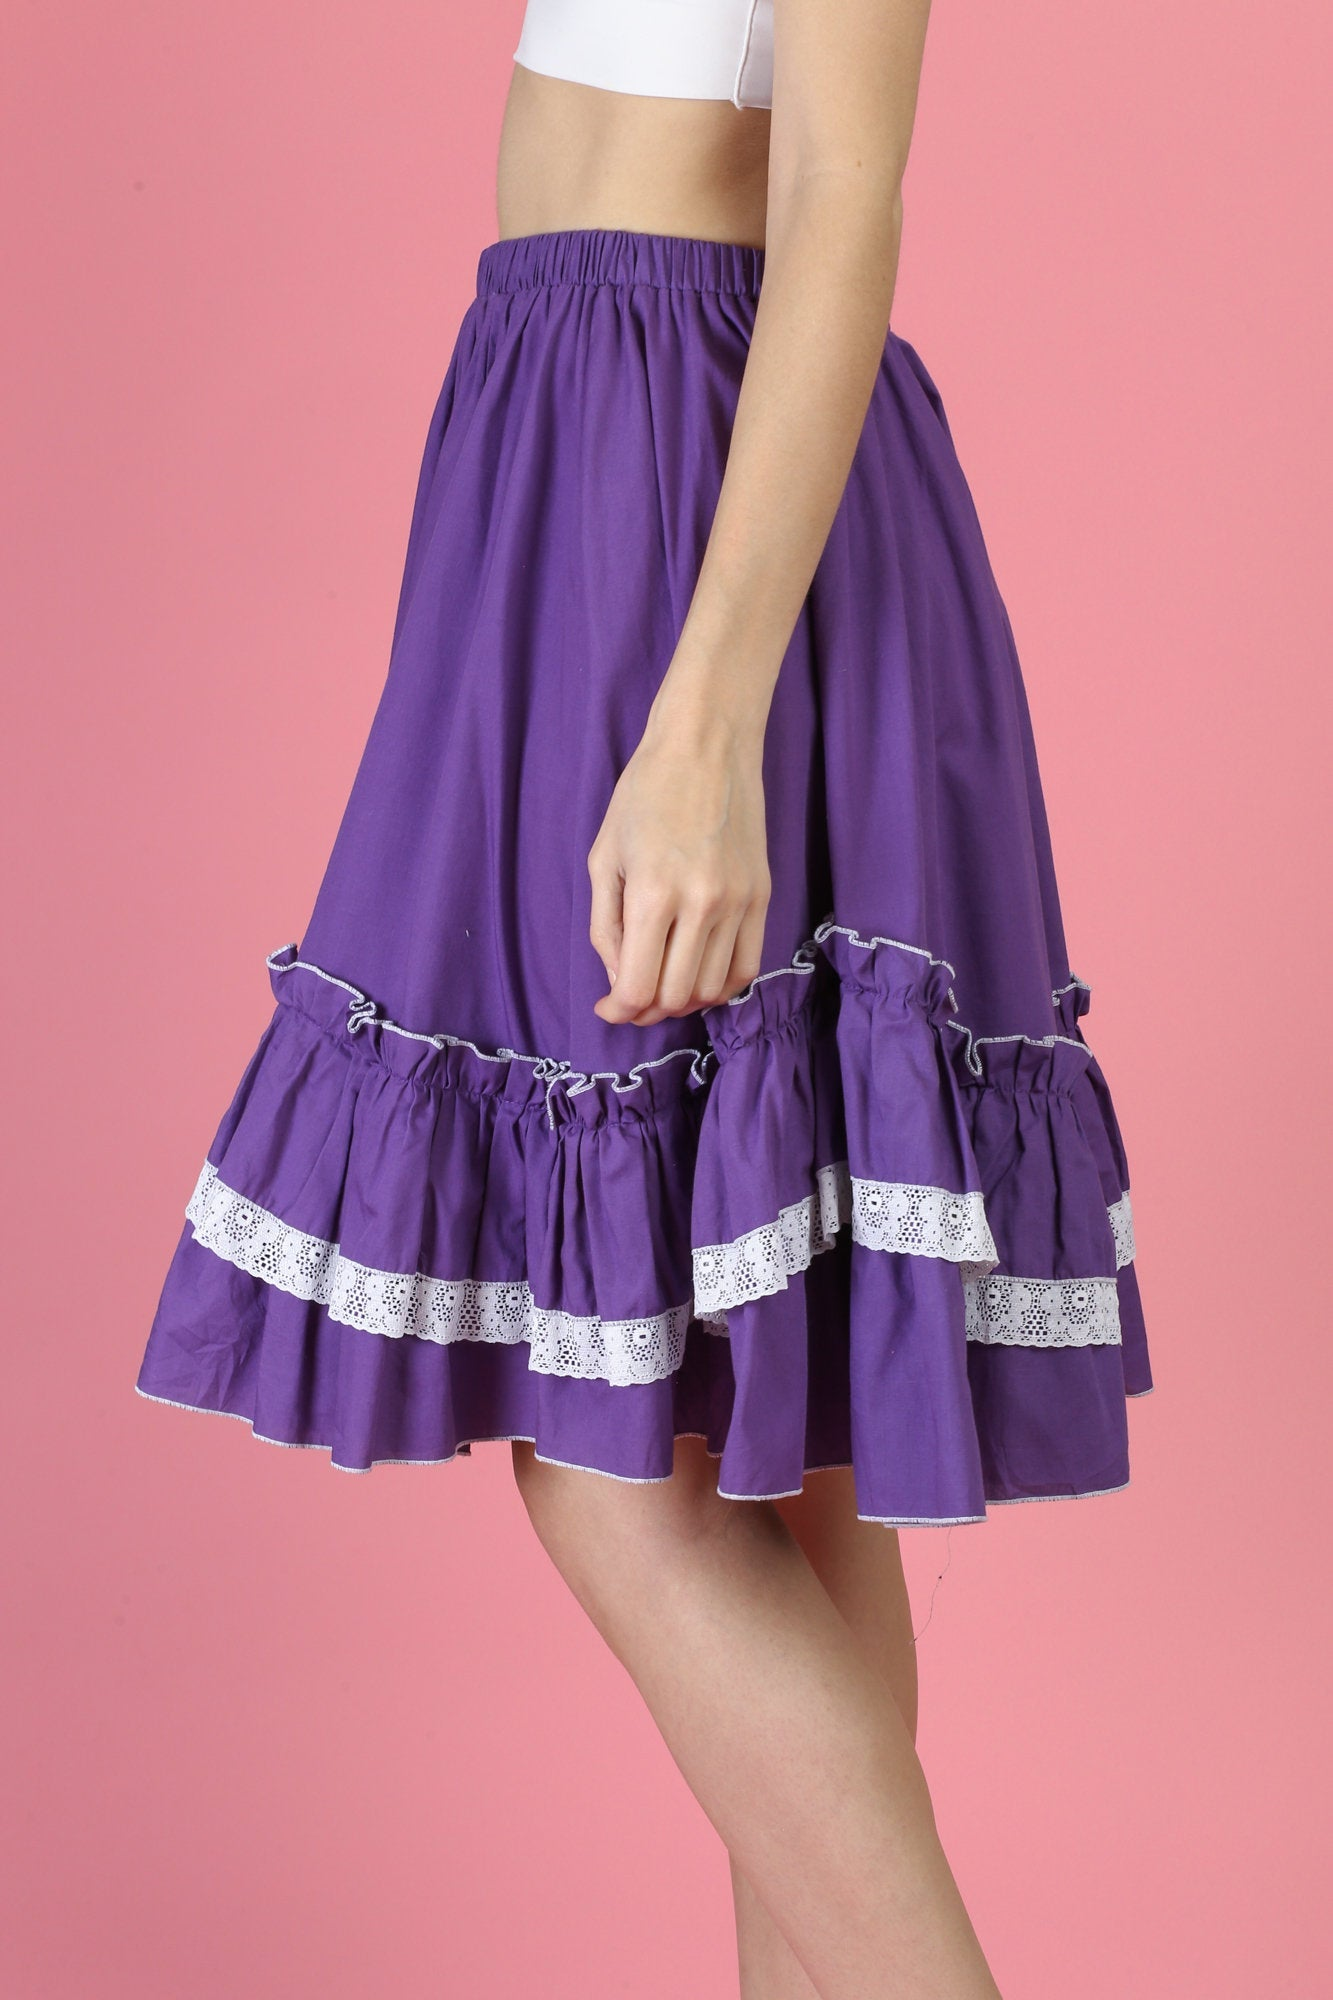 Vintage Purple Ruffle Square Dance Skirt - Small to medium